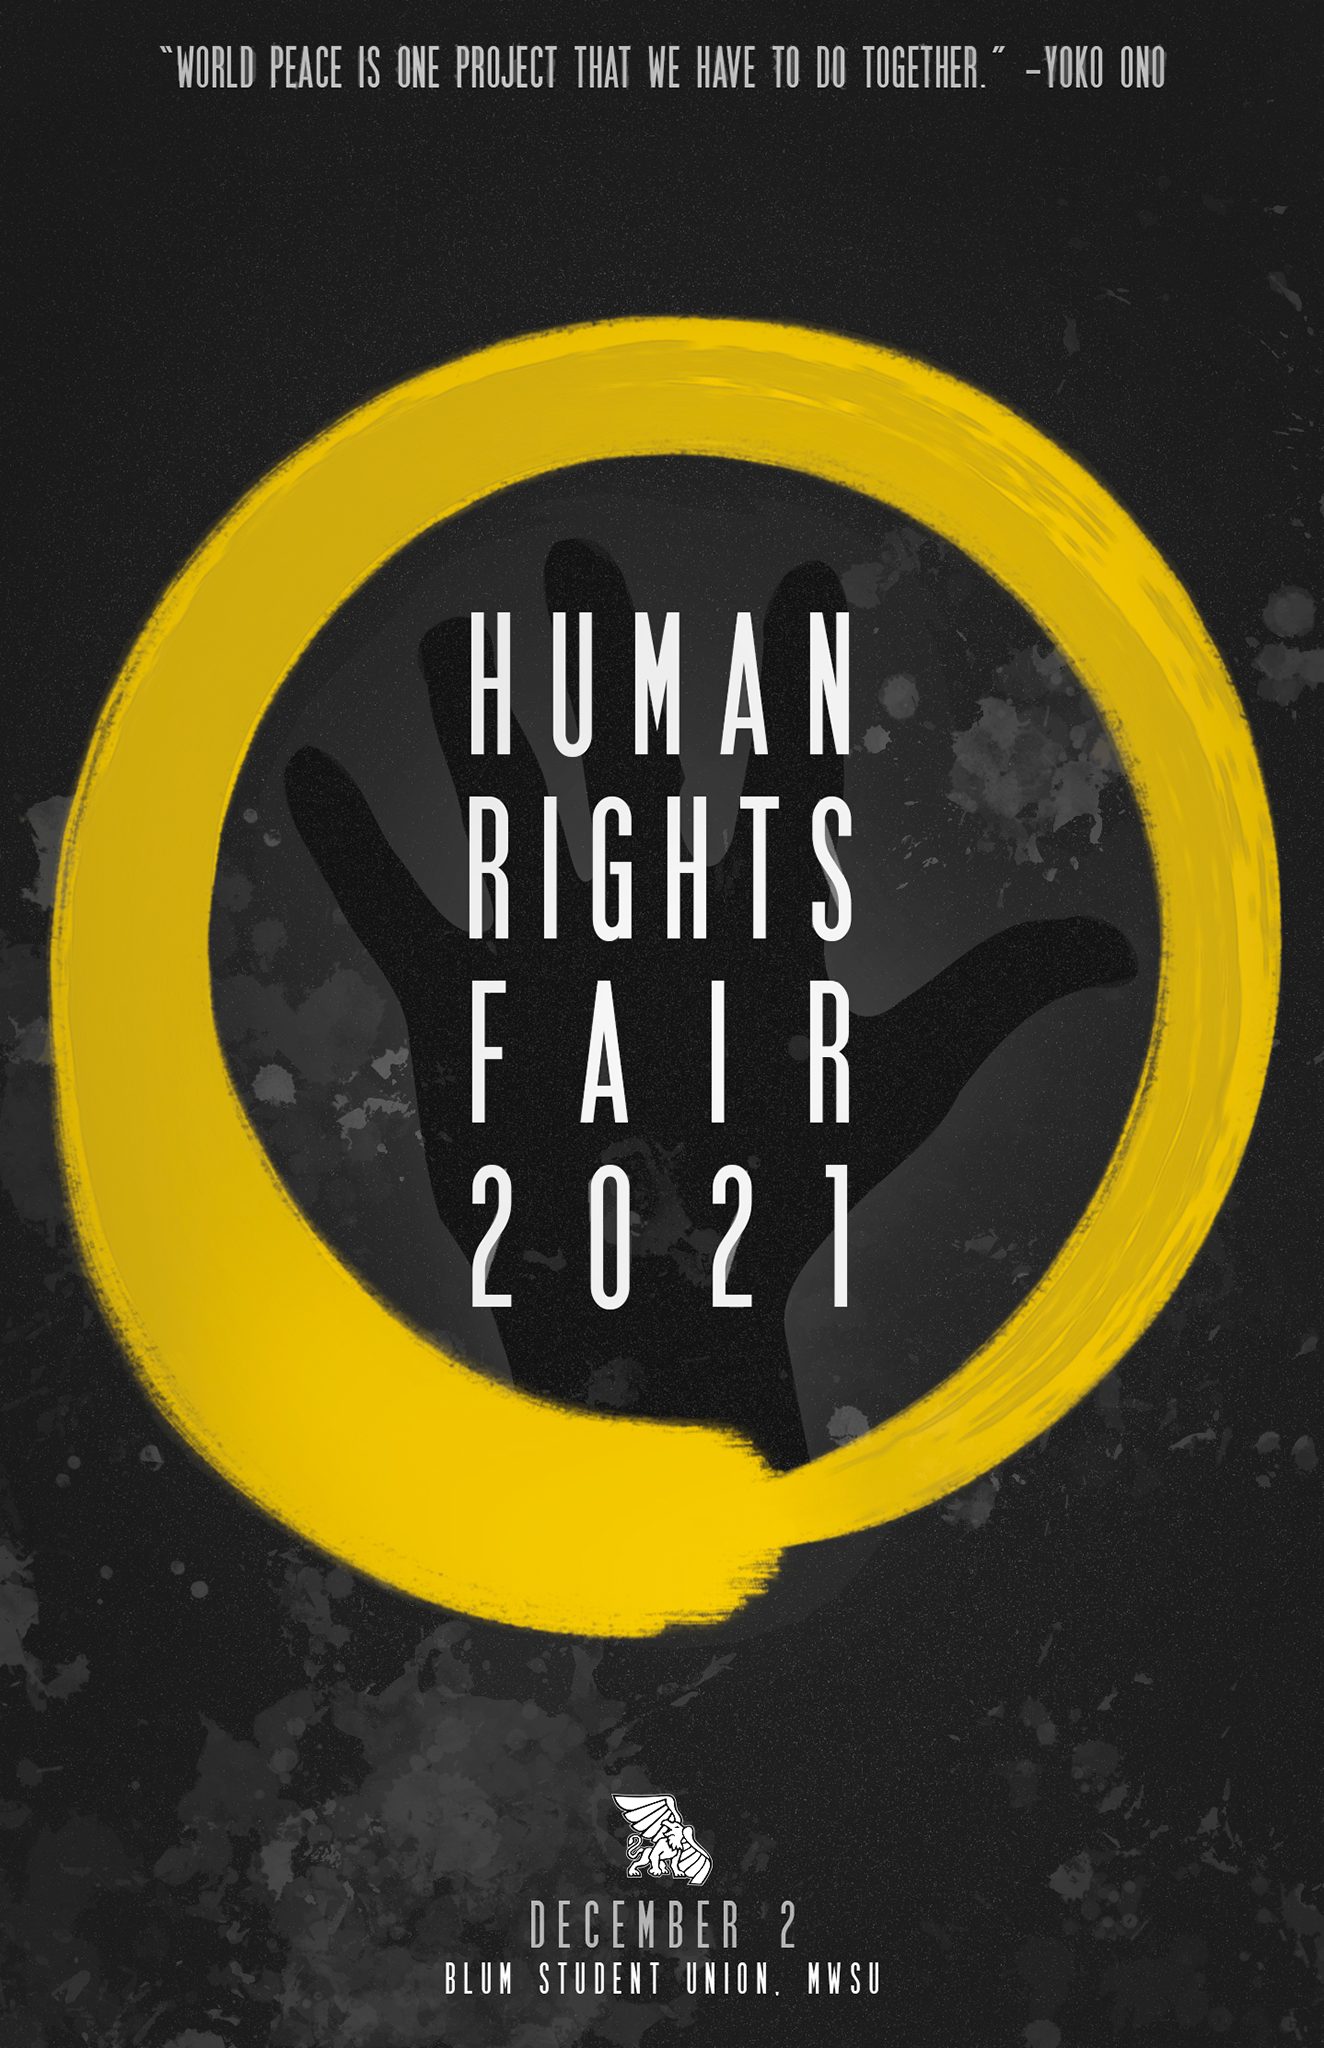 poster that says human rights fair 2021 with a gold circle around it